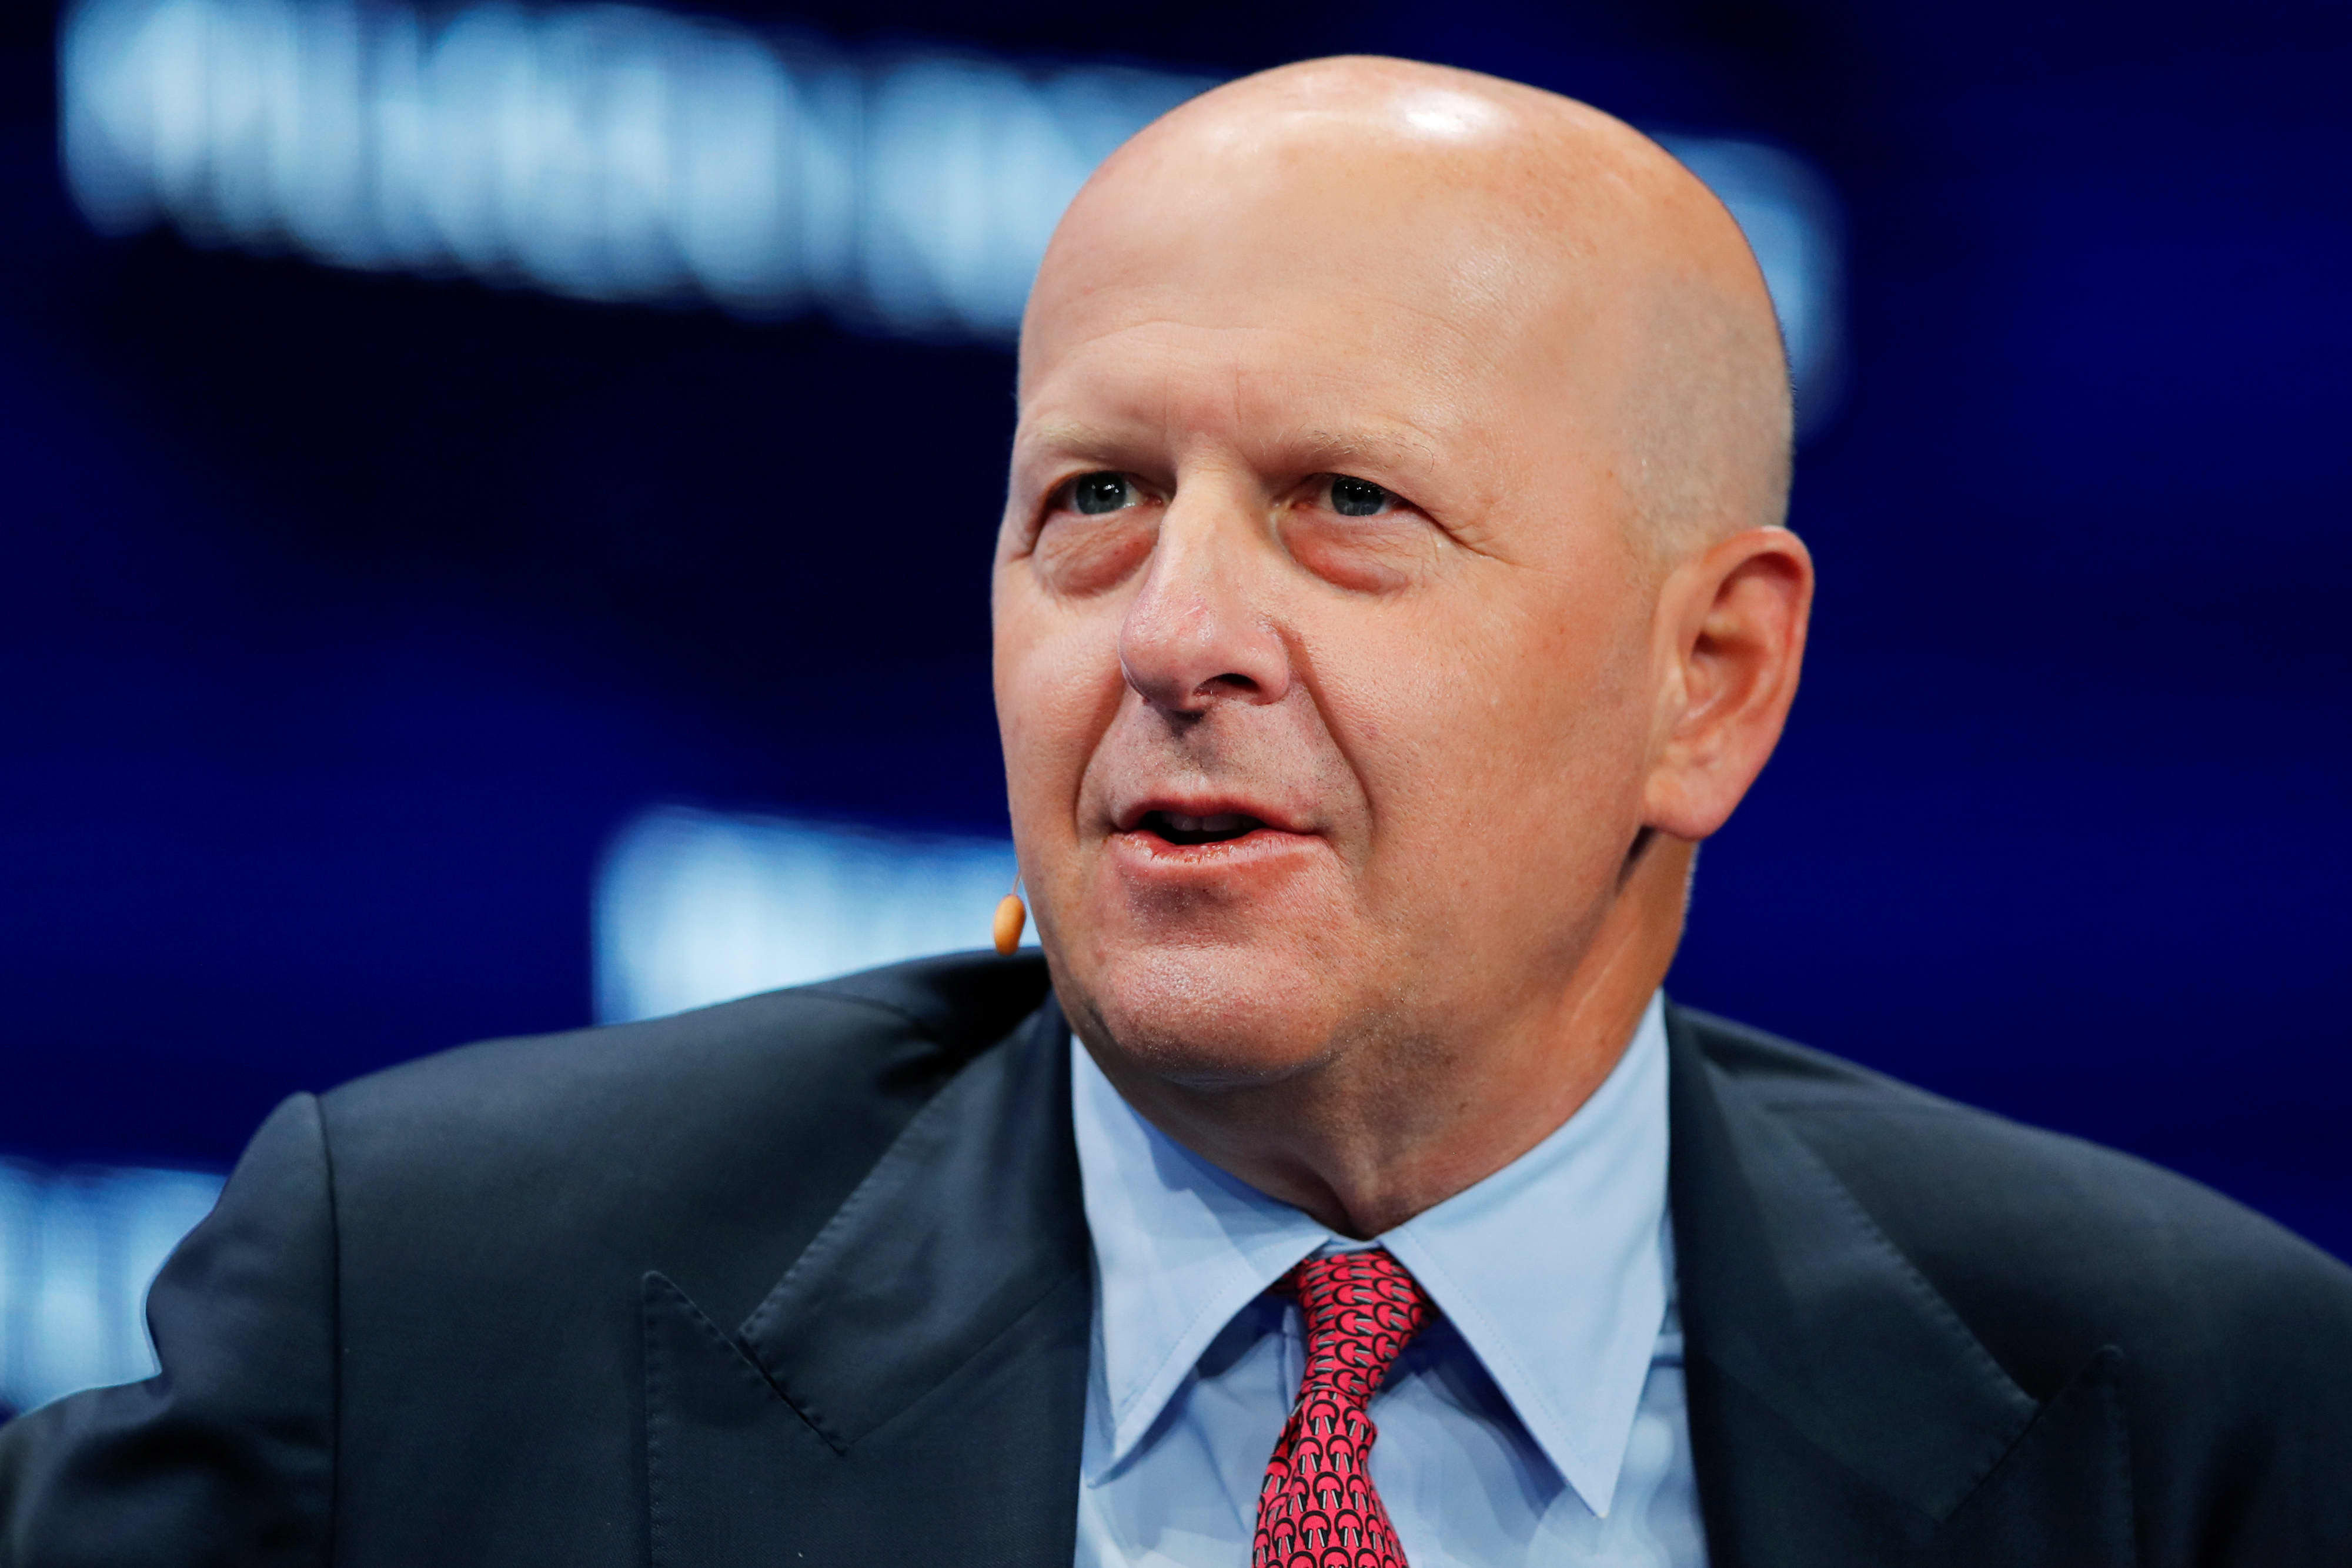 The Apple Card is the start of Goldman's transformation into a consumer powerhouse, CEO says